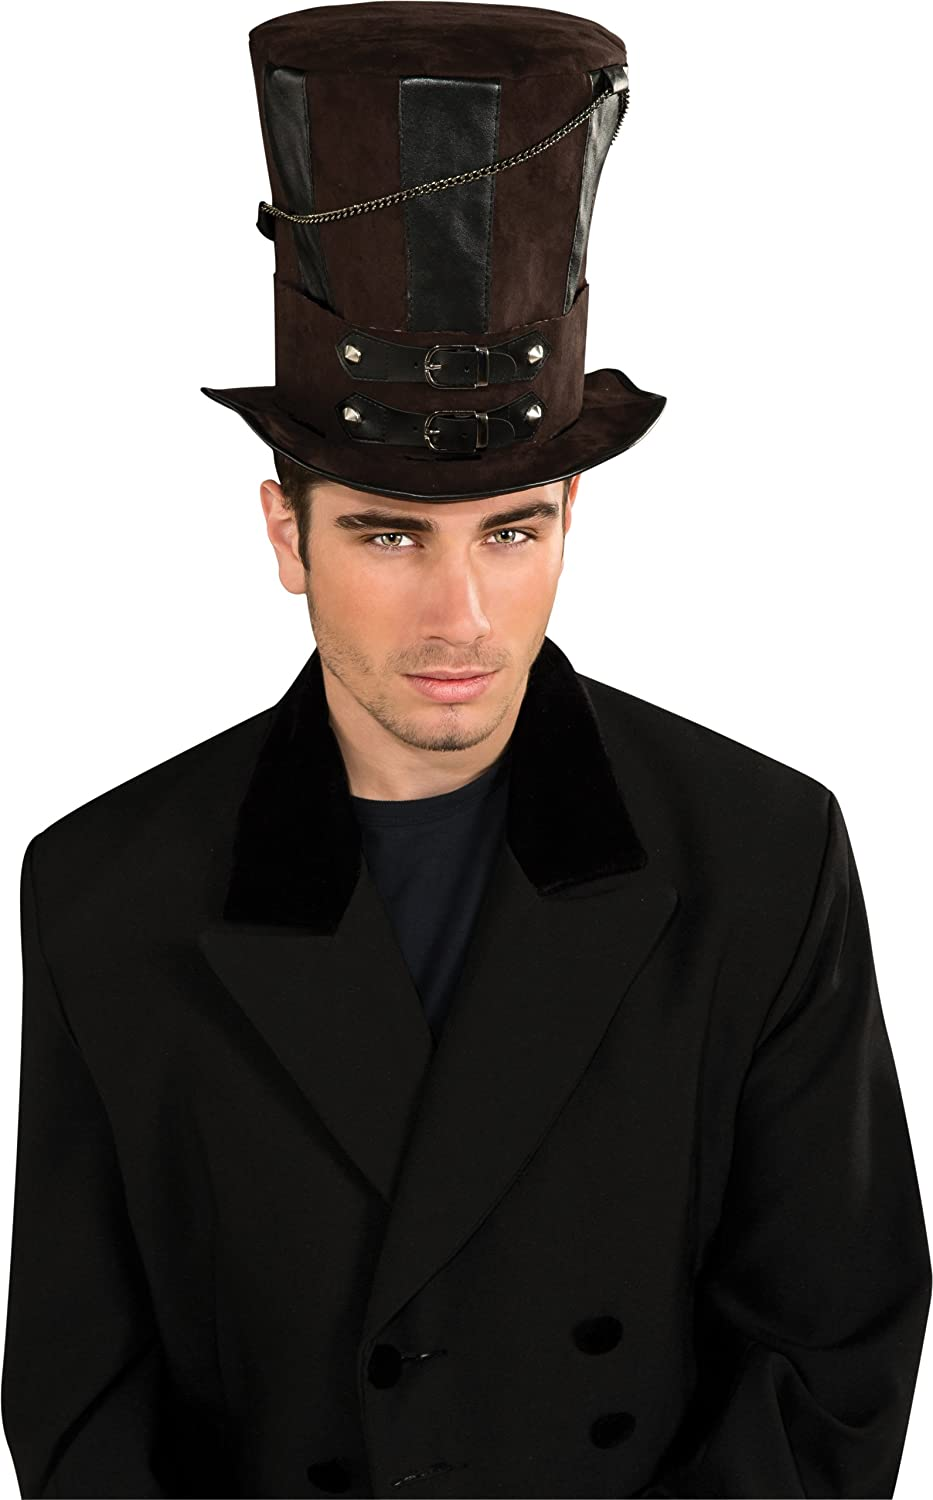 Steampunk Hats for Men | Top Hat, Bowler, Masks Rubies Costume Steampunk Top Hat With Chains and Buckles $14.93 AT vintagedancer.com